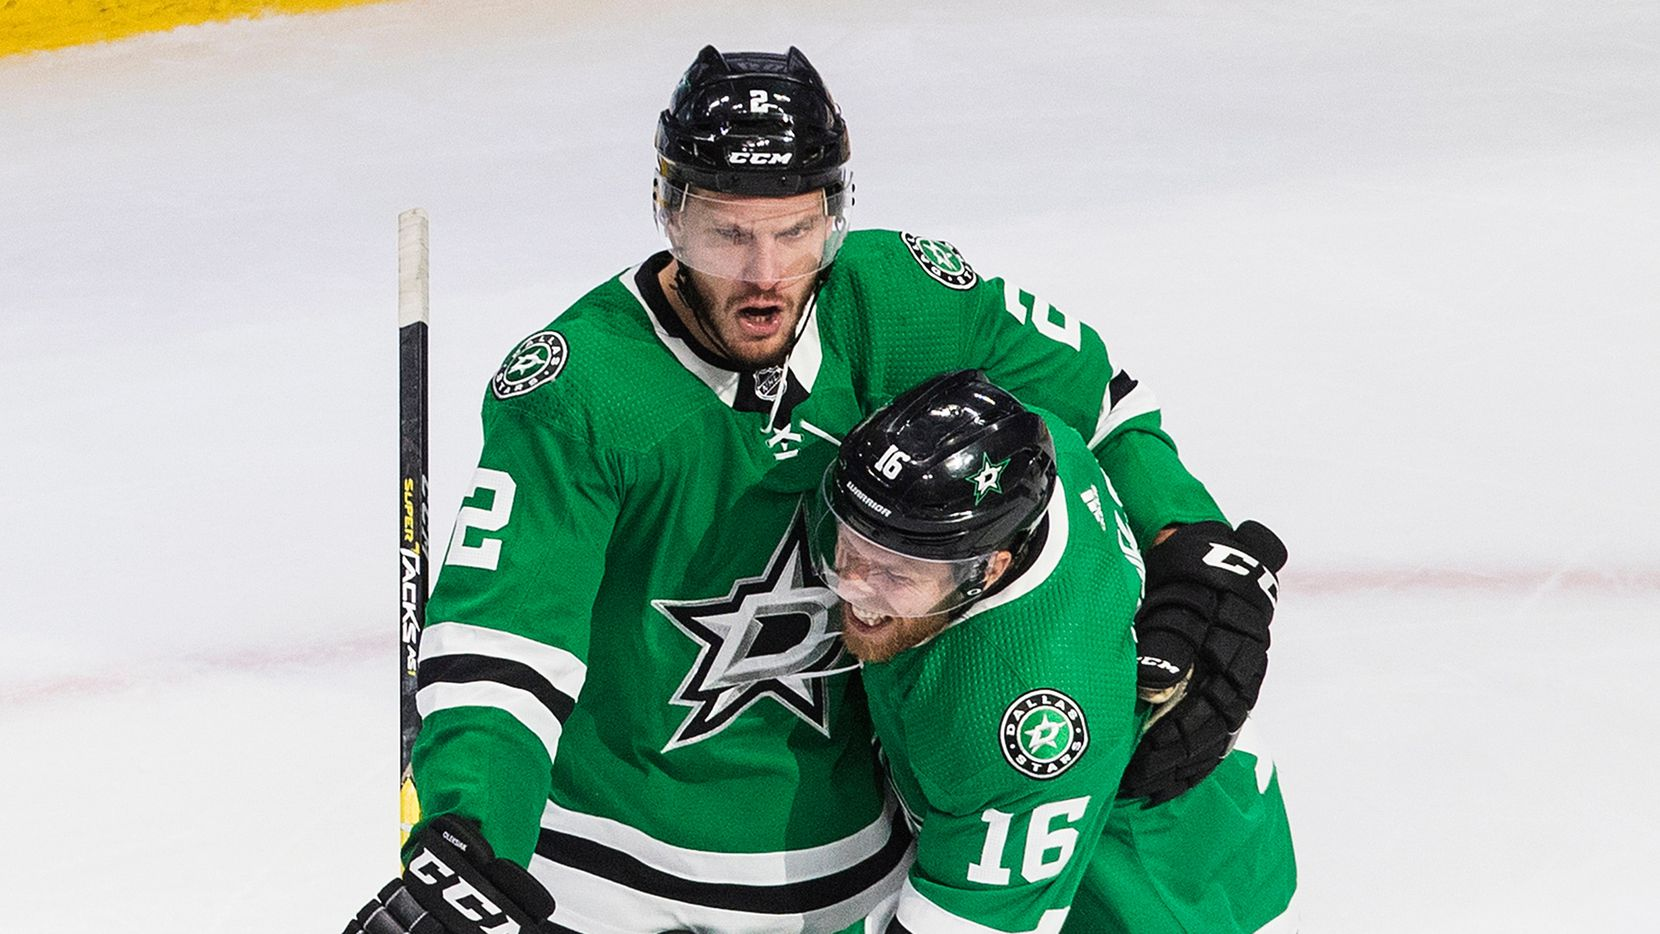 Dallas Stars' Jamie Oleksiak (2) and Joe Pavelski (16) celebrate a goal against the Calgary Flames during the third period of a first round NHL Stanley Cup playoff hockey series in Edmonton, Alberta, on Thursday, Aug. 13, 2020.